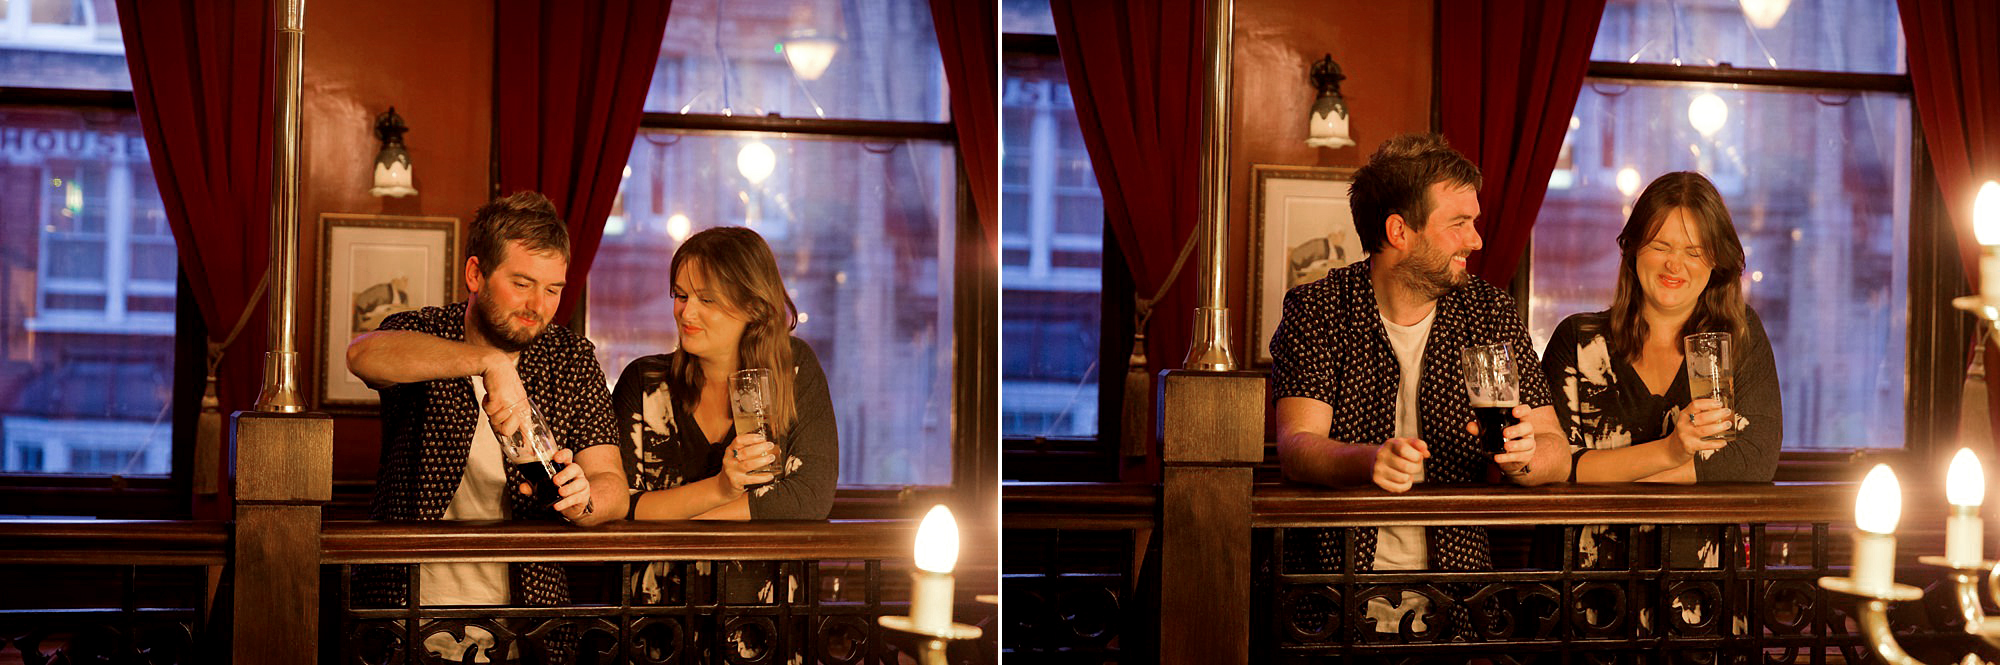 Croydon engagement photography in the local pub